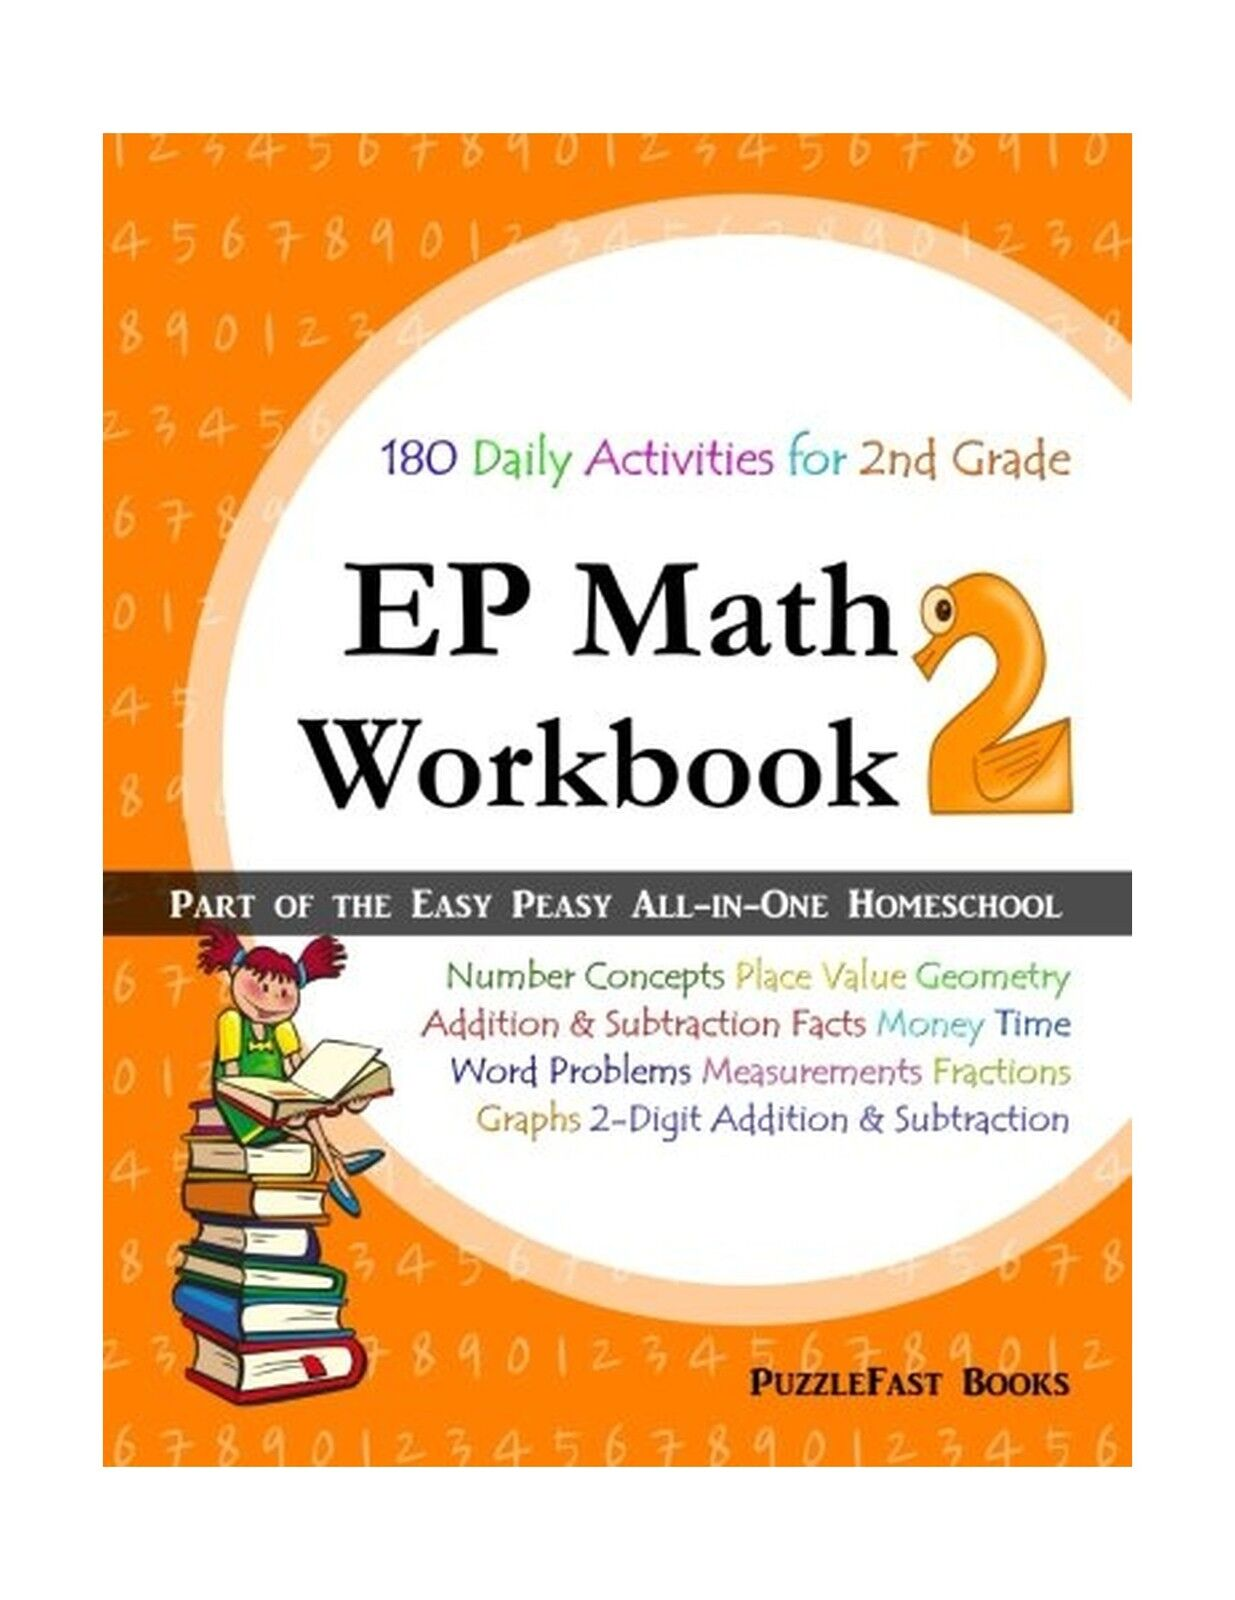 EP Math 2 Workbook : Part of the Easy Peasy All-In-One Homeschool by  PuzzleFast (2016, Paperback, Large Type)